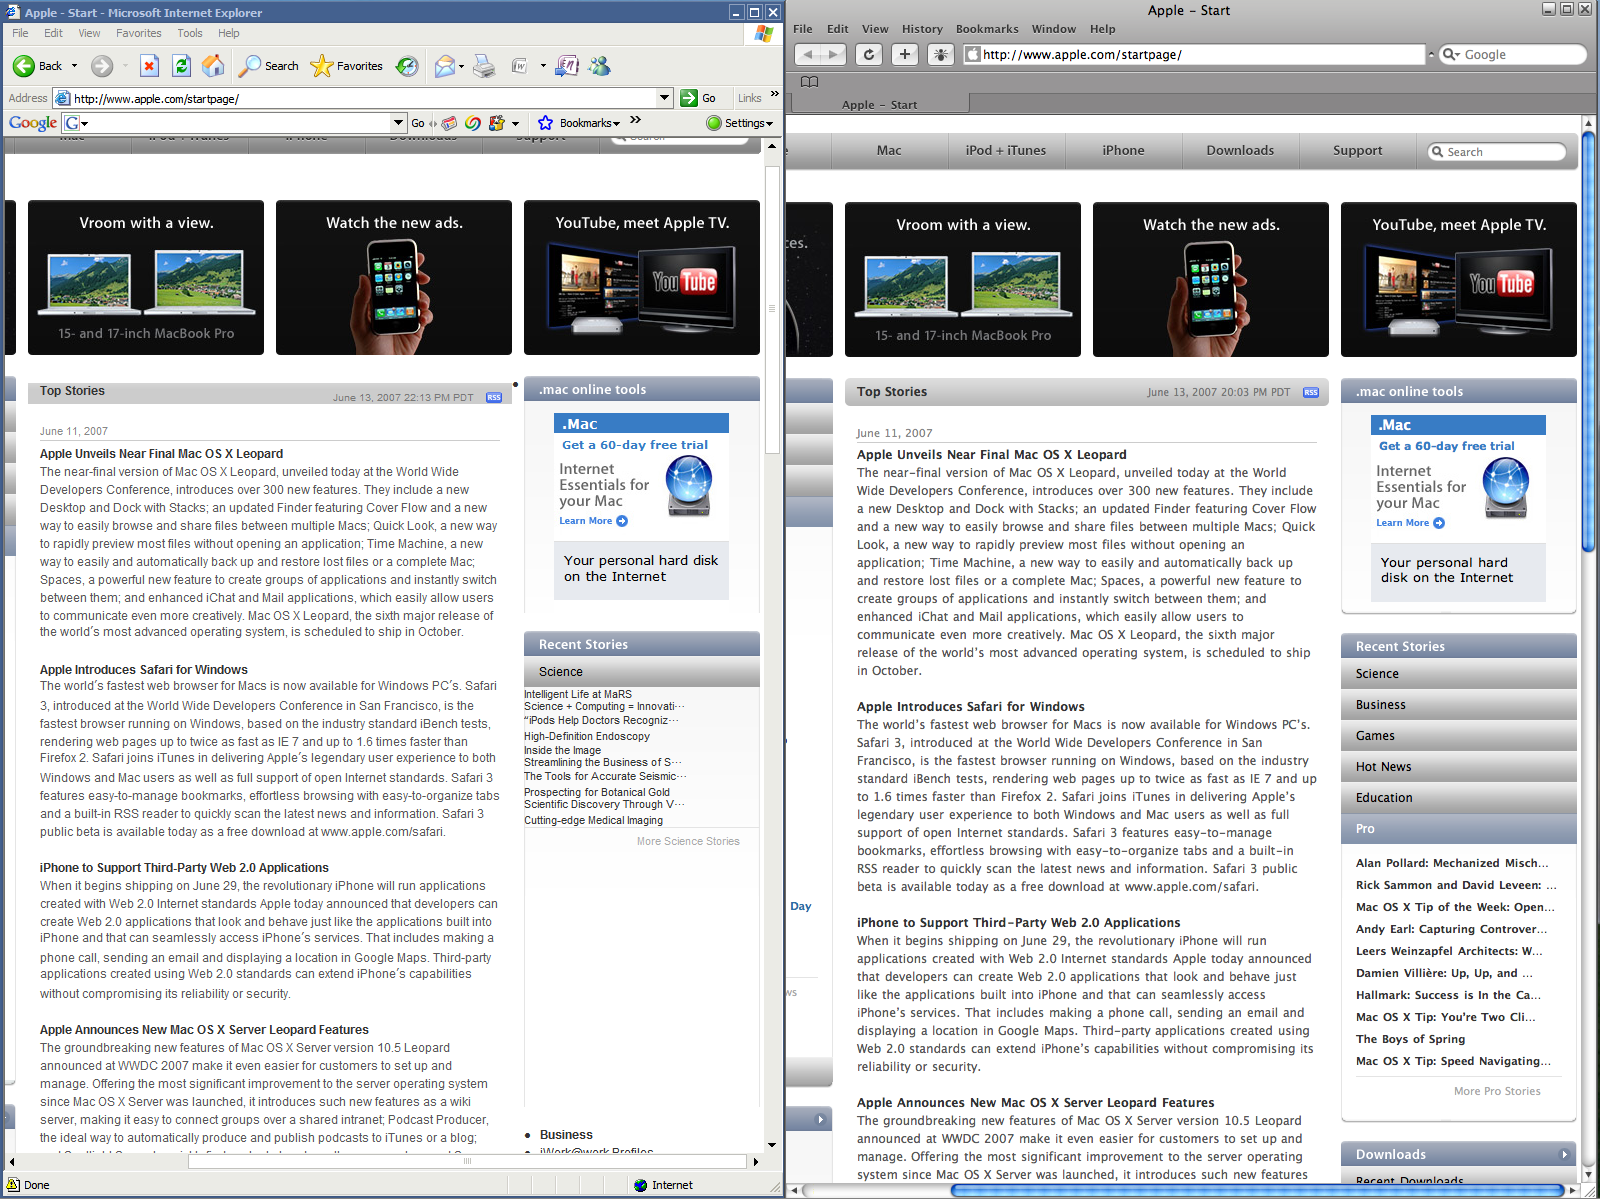 Internet Explorer 6 and Safari 3 Beta (Windows)